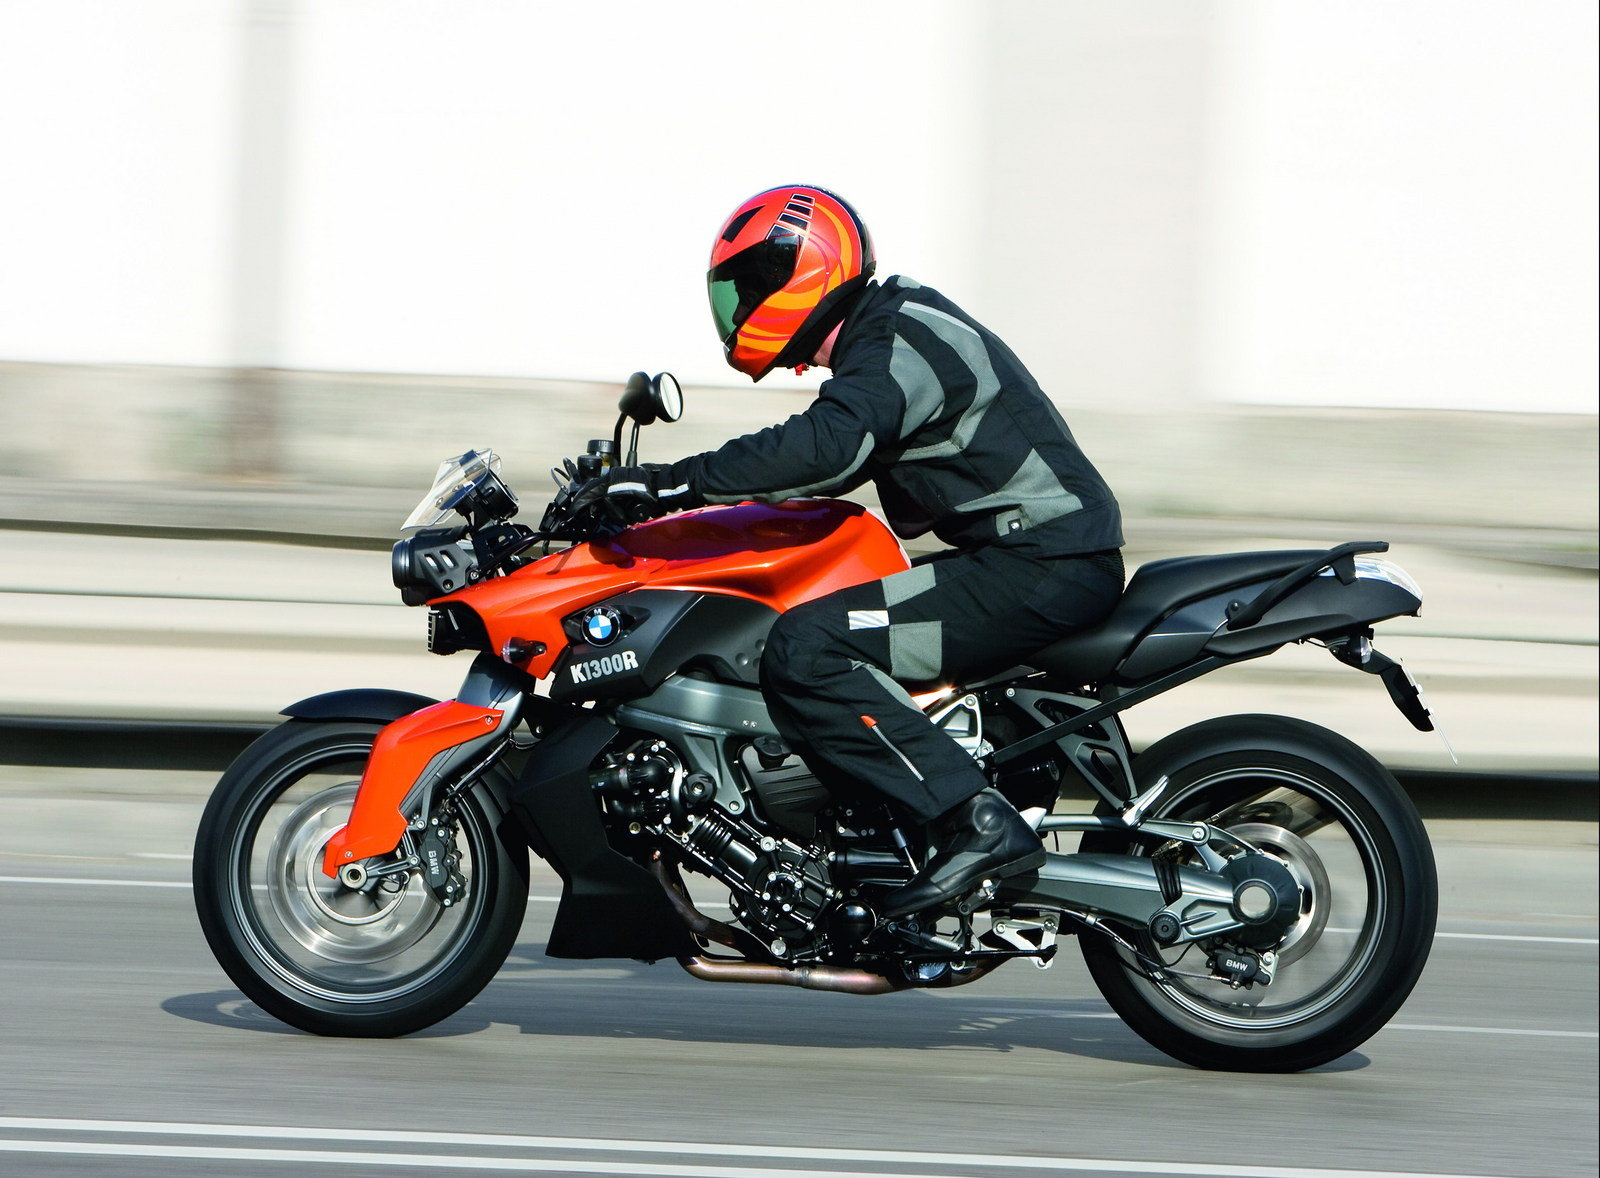 2009 bmw k 1300 r picture 302890 motorcycle review. Black Bedroom Furniture Sets. Home Design Ideas